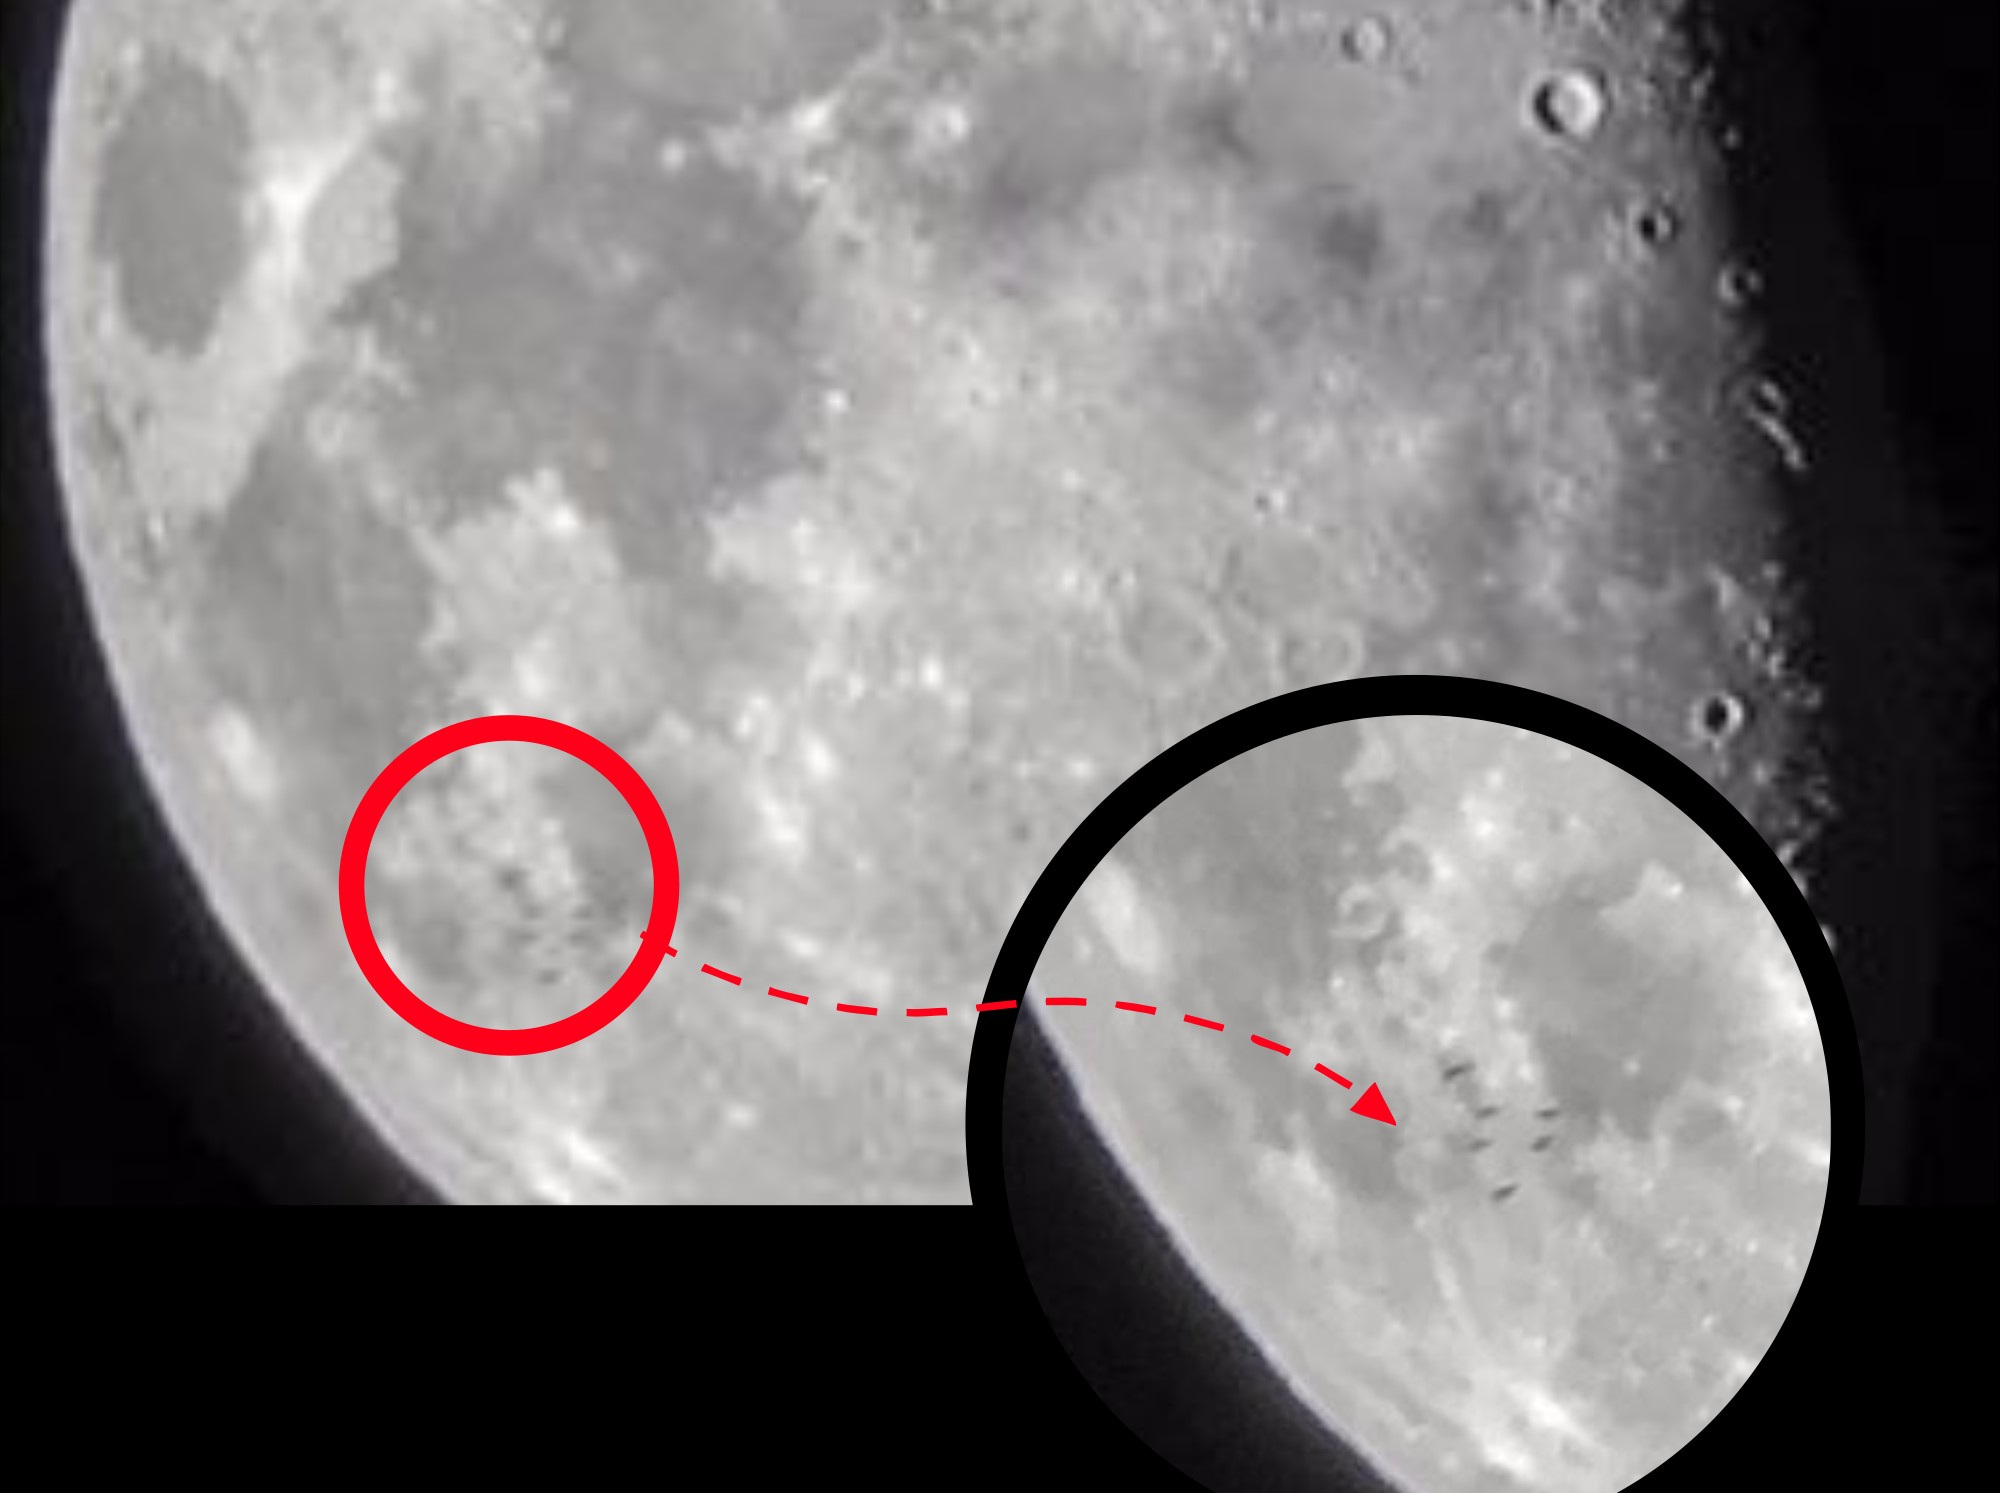 What are these strange objects flying in front of the moon?